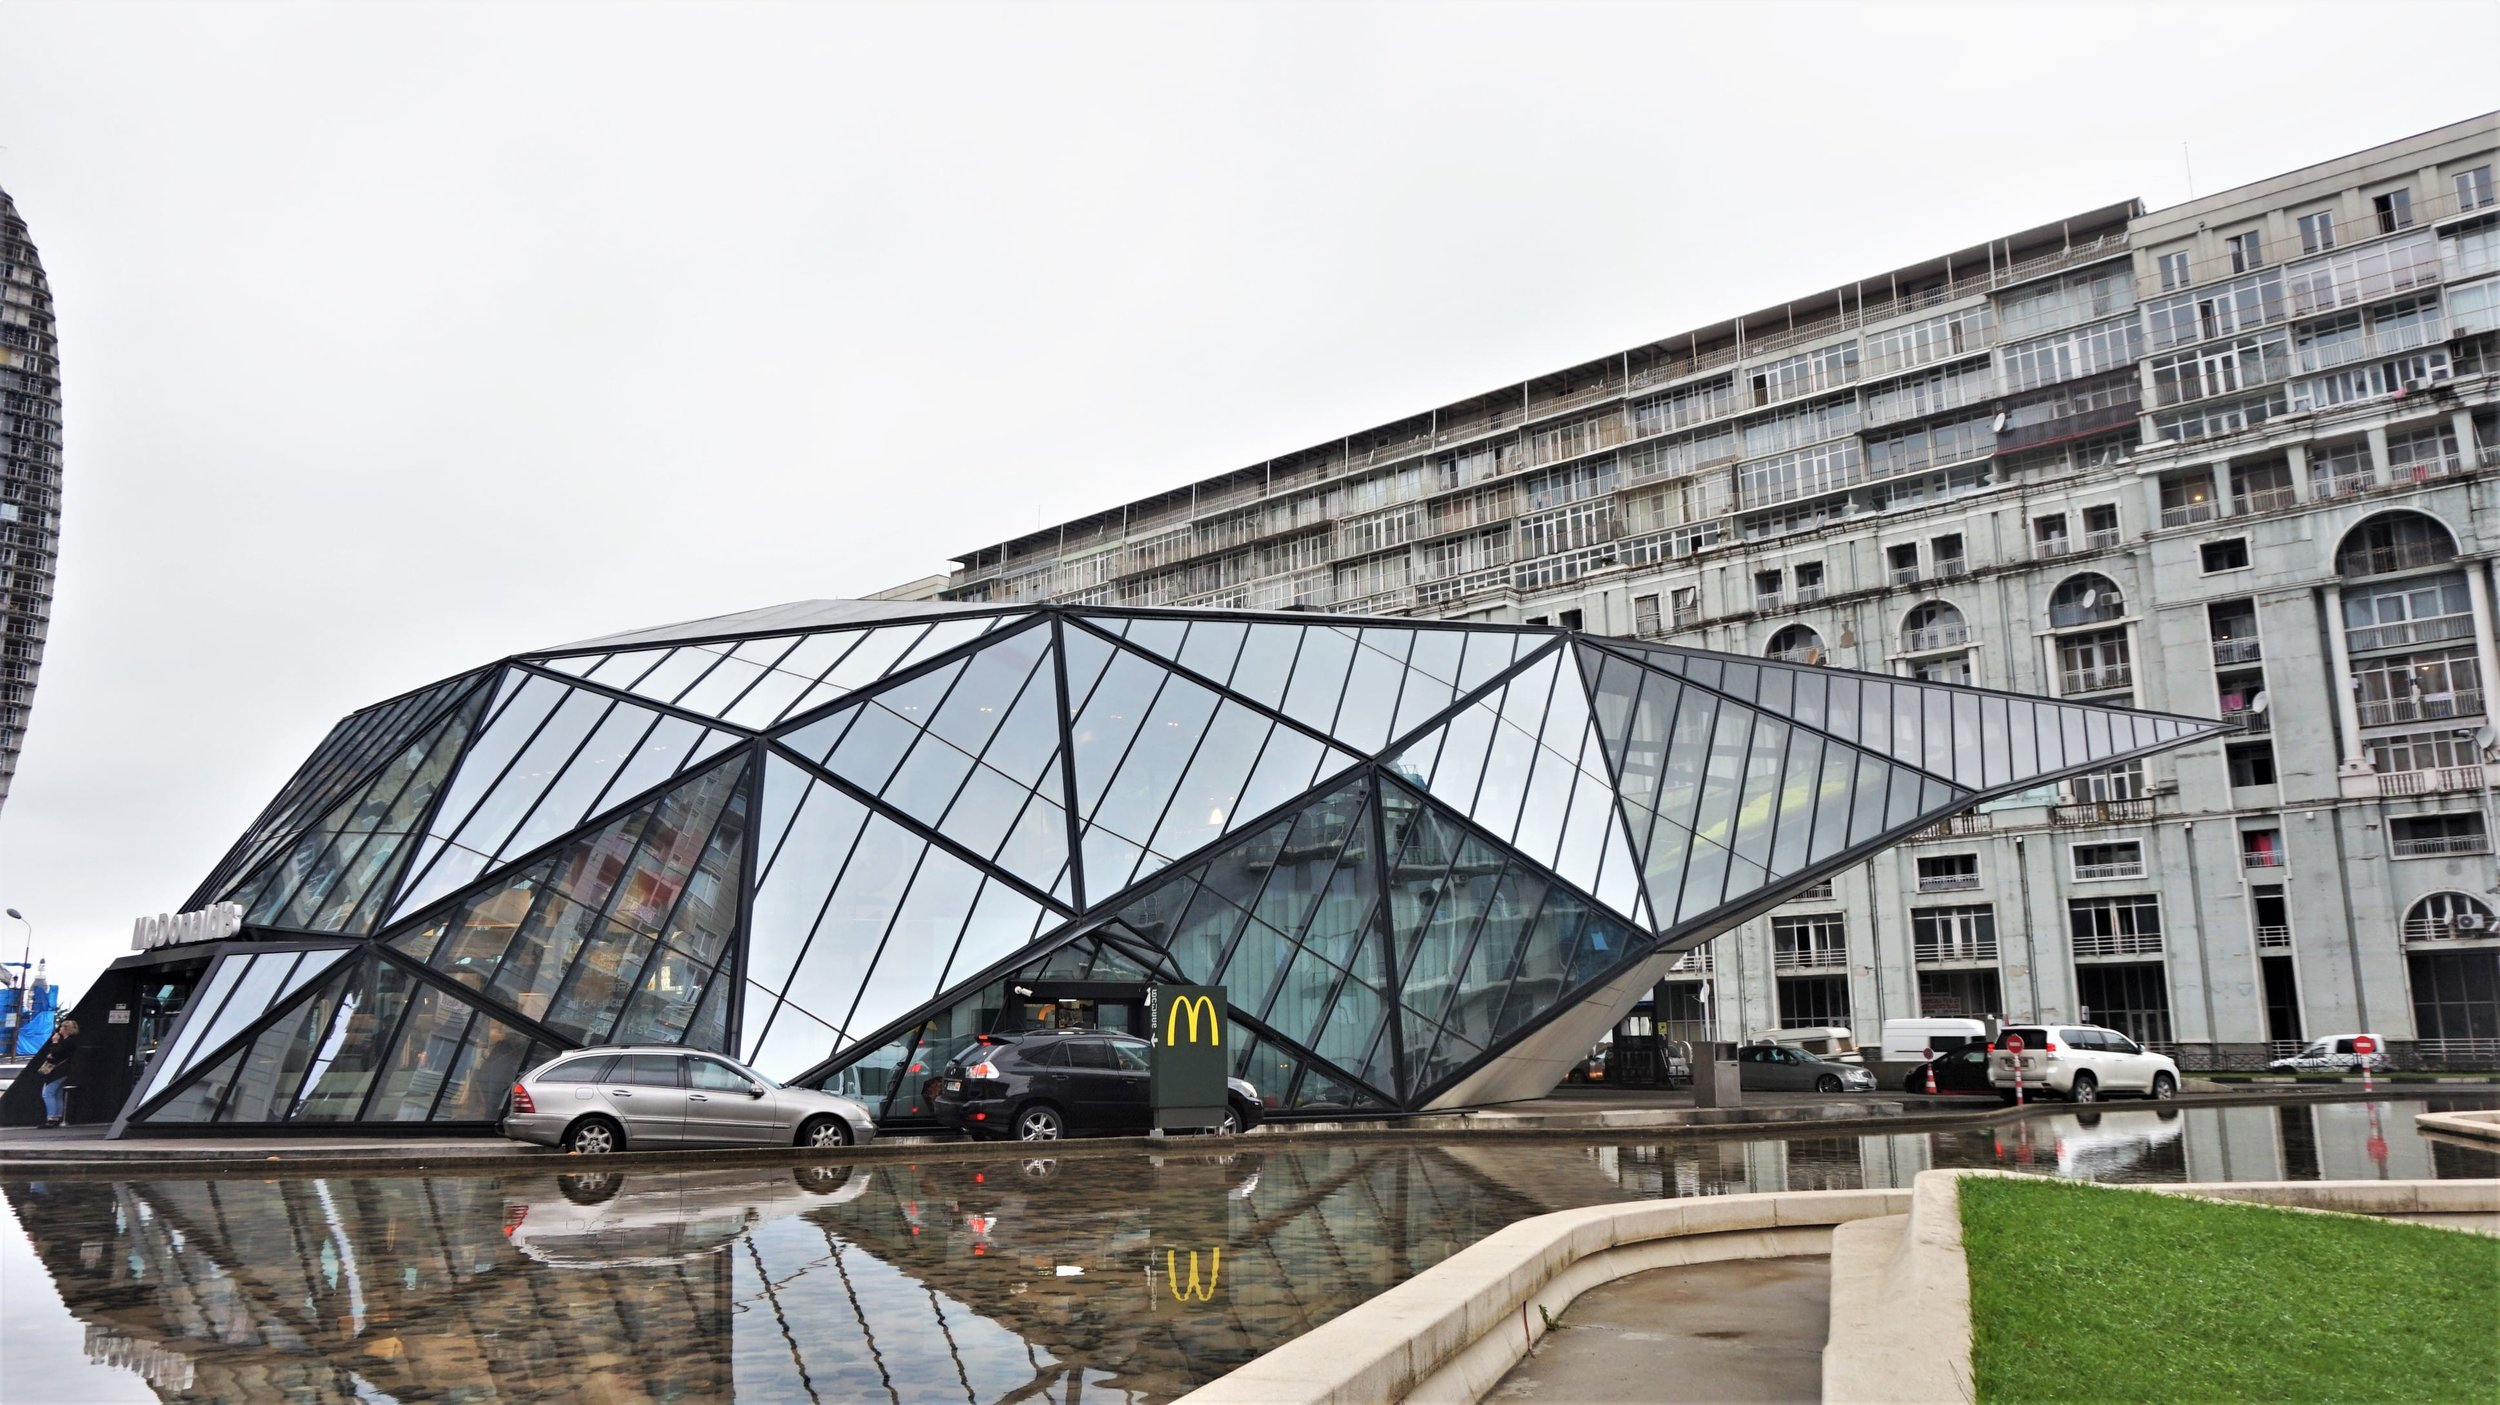 weird things to do in Batumi the coolest MCDonalds in the world